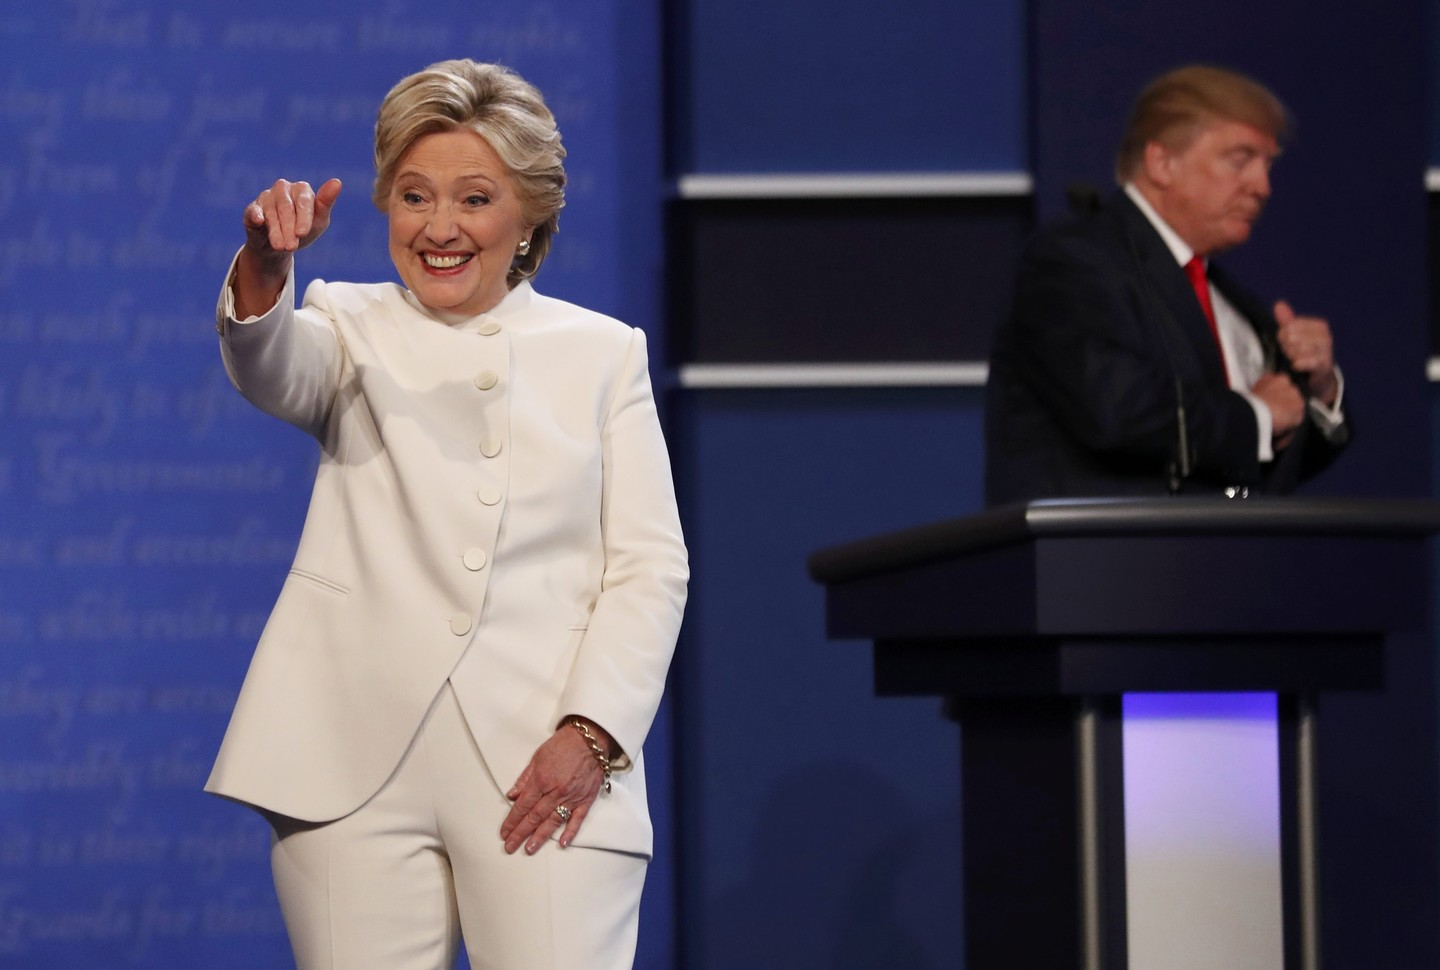 the views of hillary clinton donald trump gary johnson jill stein and myself on commonly discussed i With both donald trump and hillary clinton with minorities steadily growing—as discussed when many expressed support for gary johnson or jill stein.